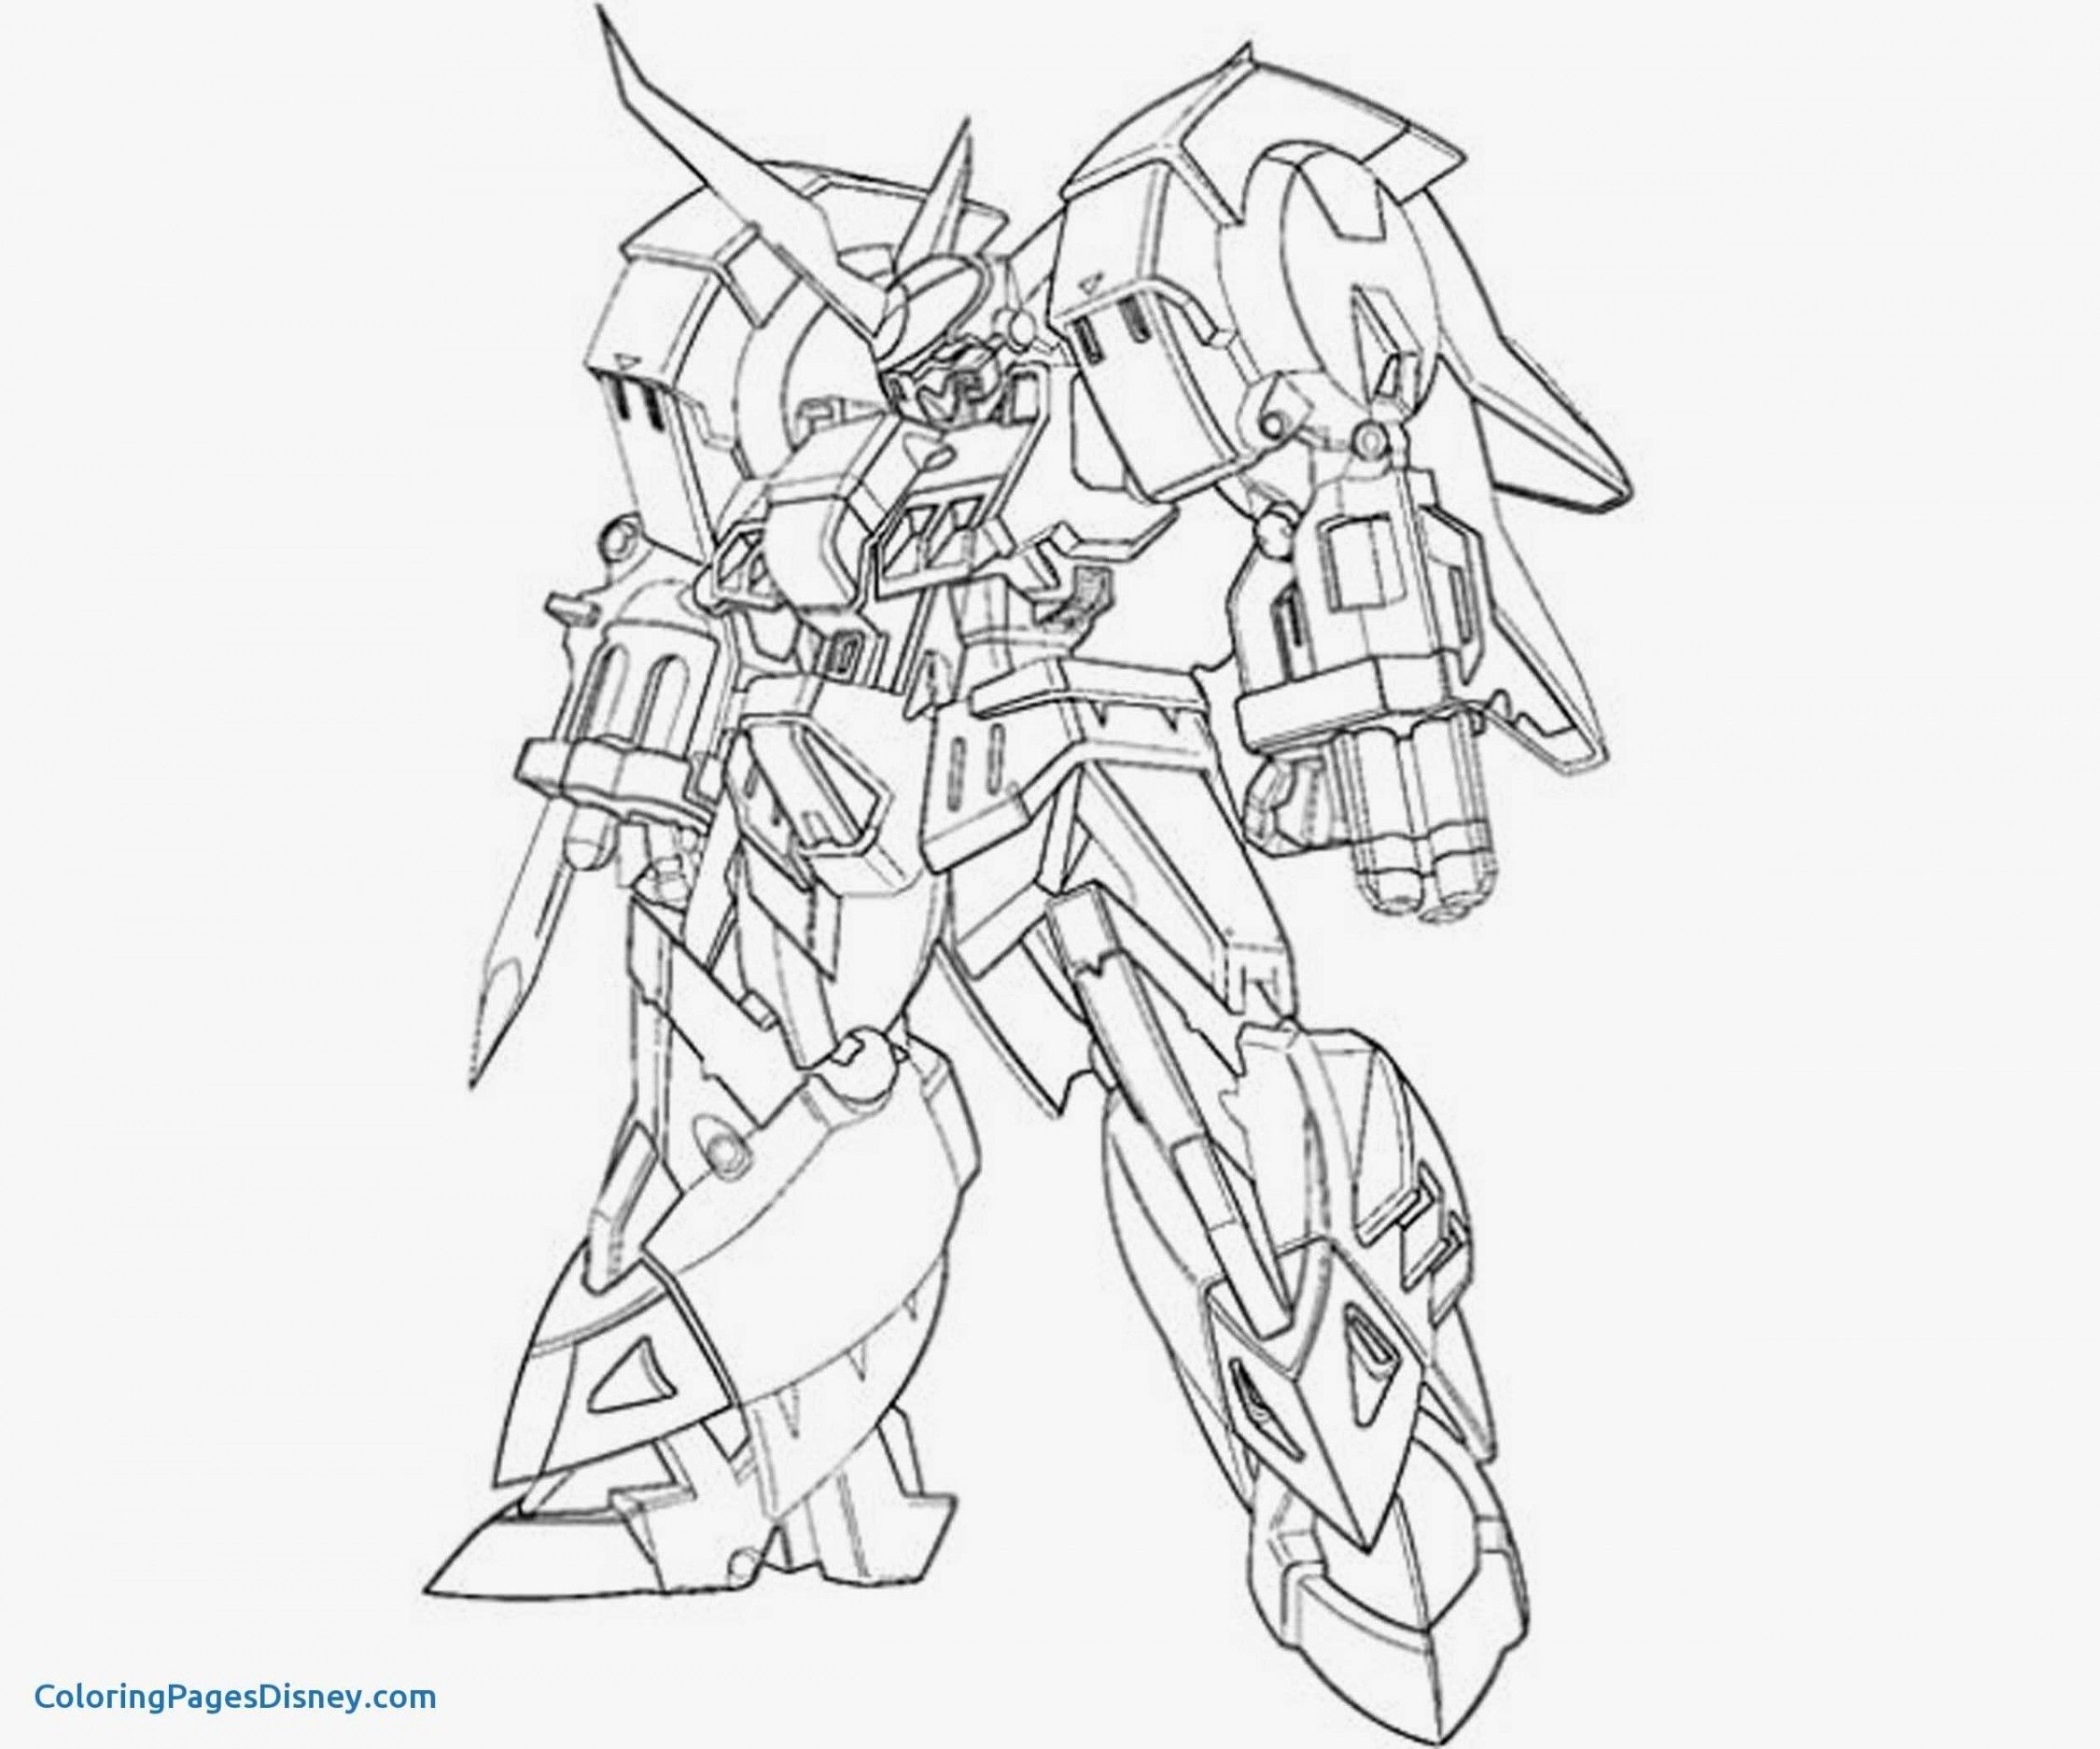 10 Megatron Coloring Transformers Coloring Pages Art Therapy Coloring Book Animal Coloring Pages